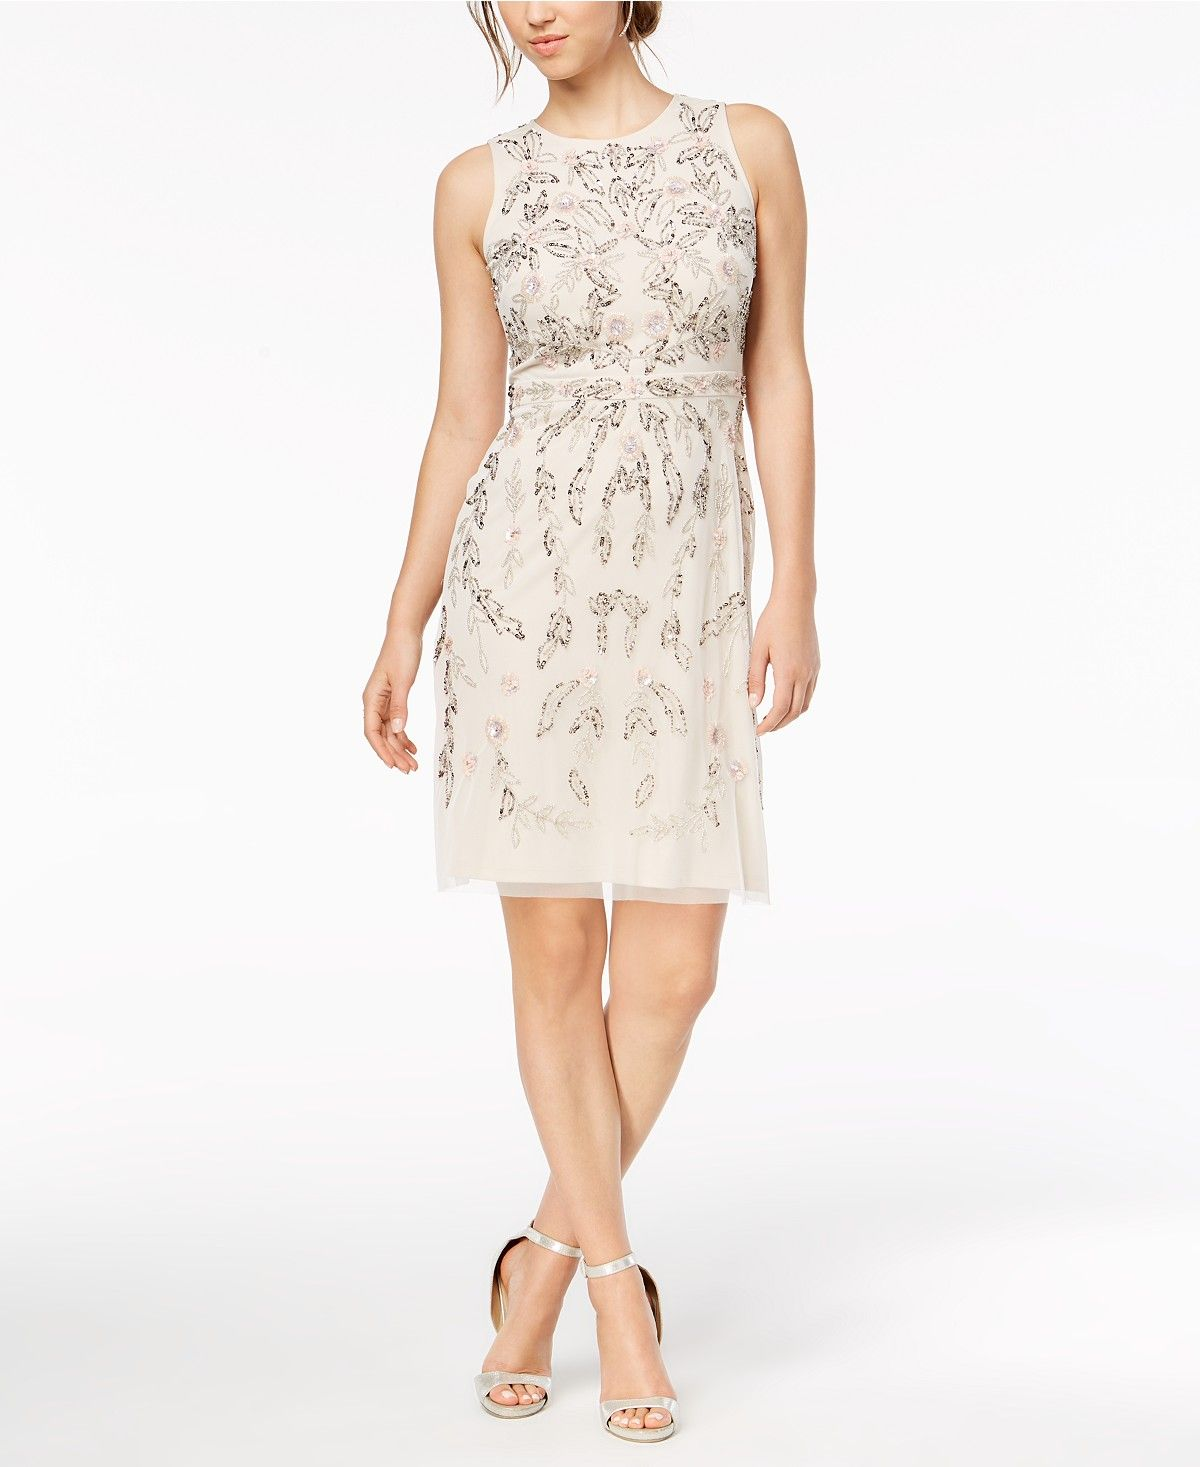 3a0b06a6c5 Adrianna Papell Flower-Beaded A-Line Dress - Dresses - Women - Macy's Tea